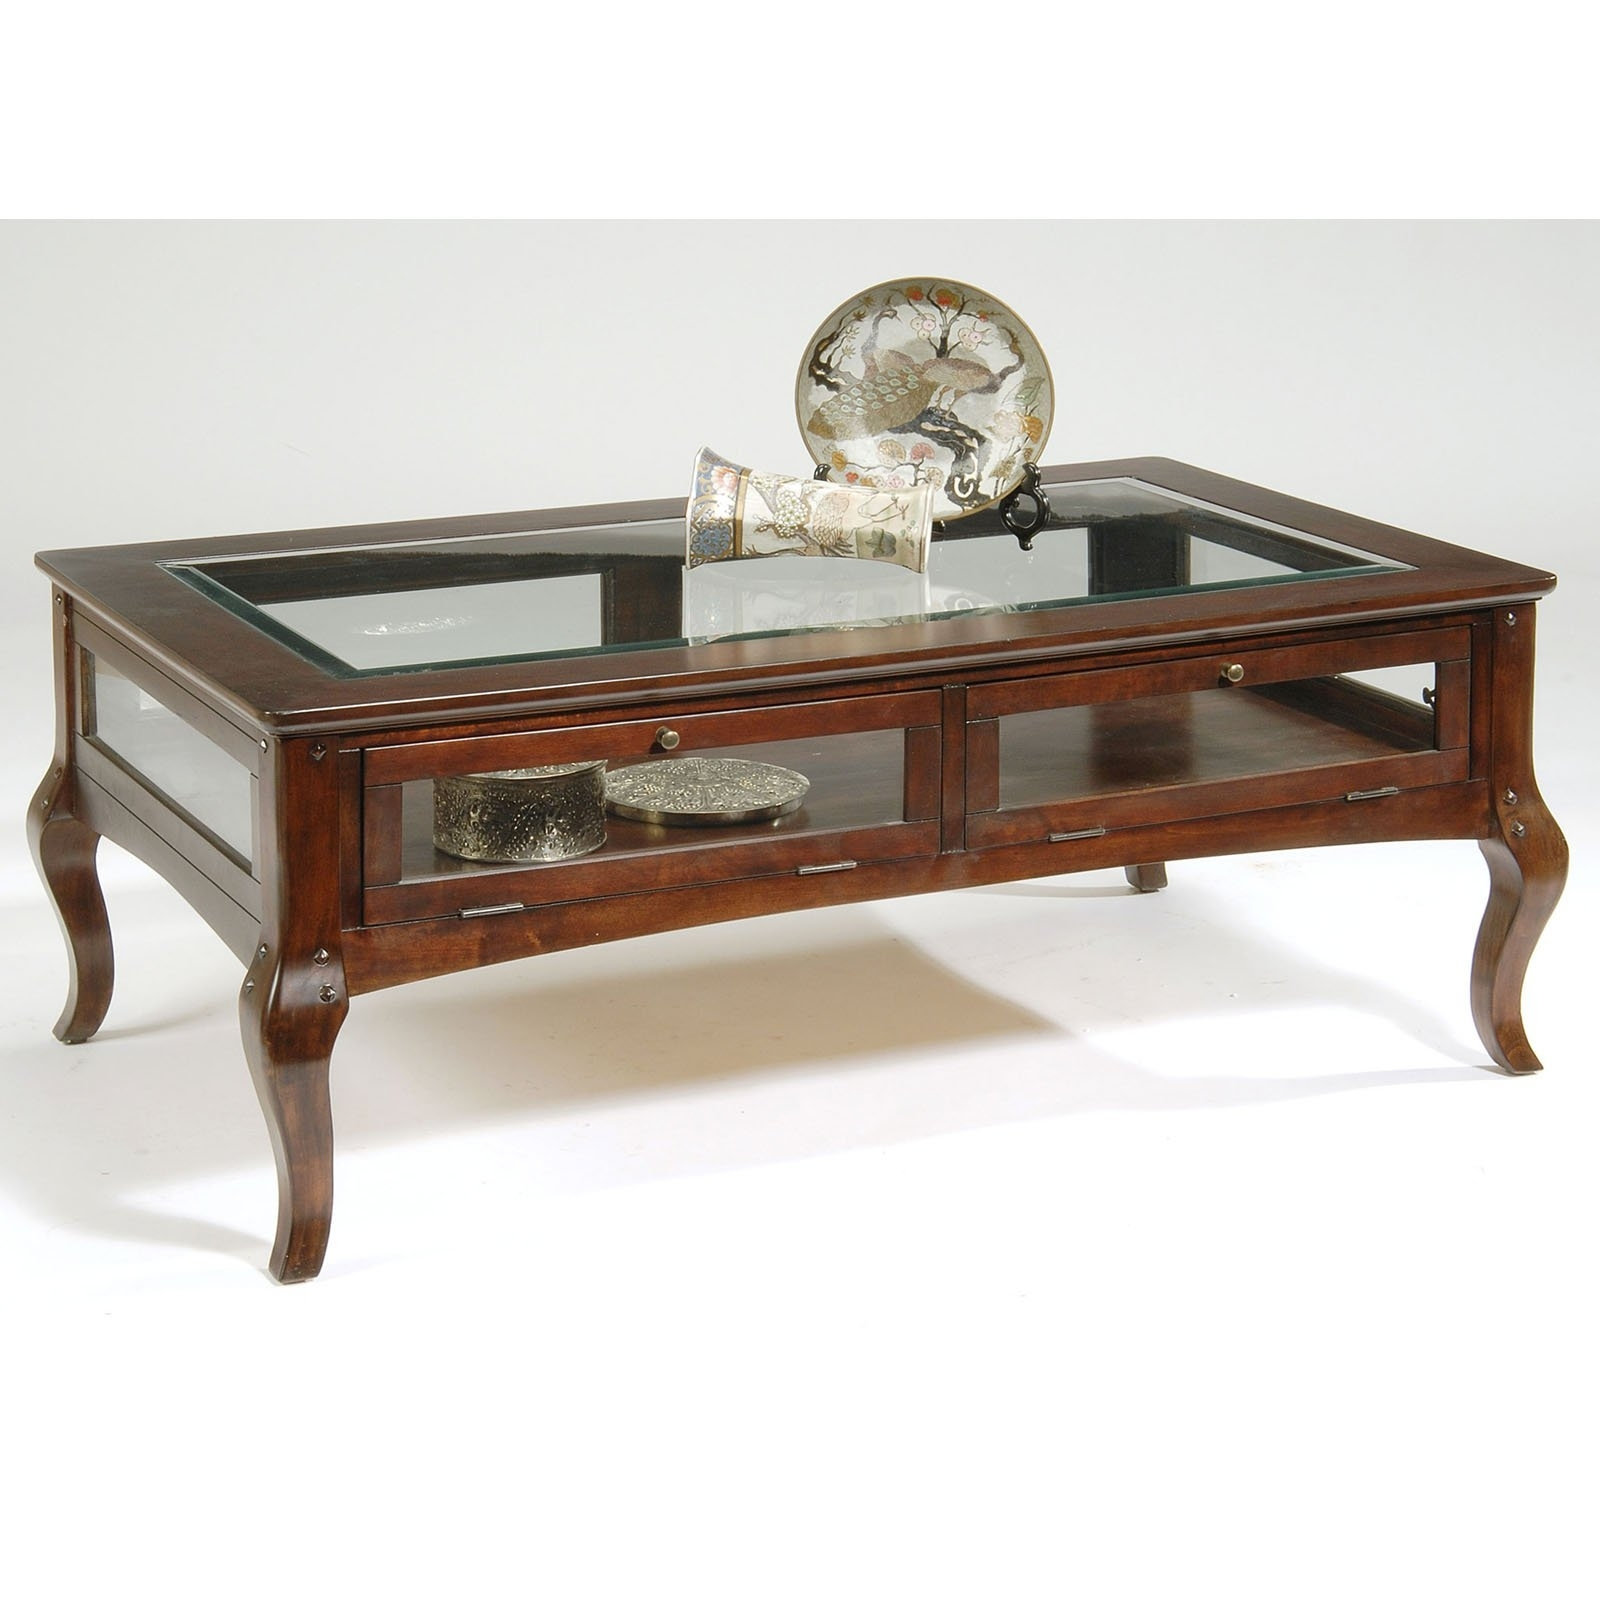 Tuckr Box Decors : Build Throughout Preferred Rectangular Barbox Coffee Tables (View 18 of 20)